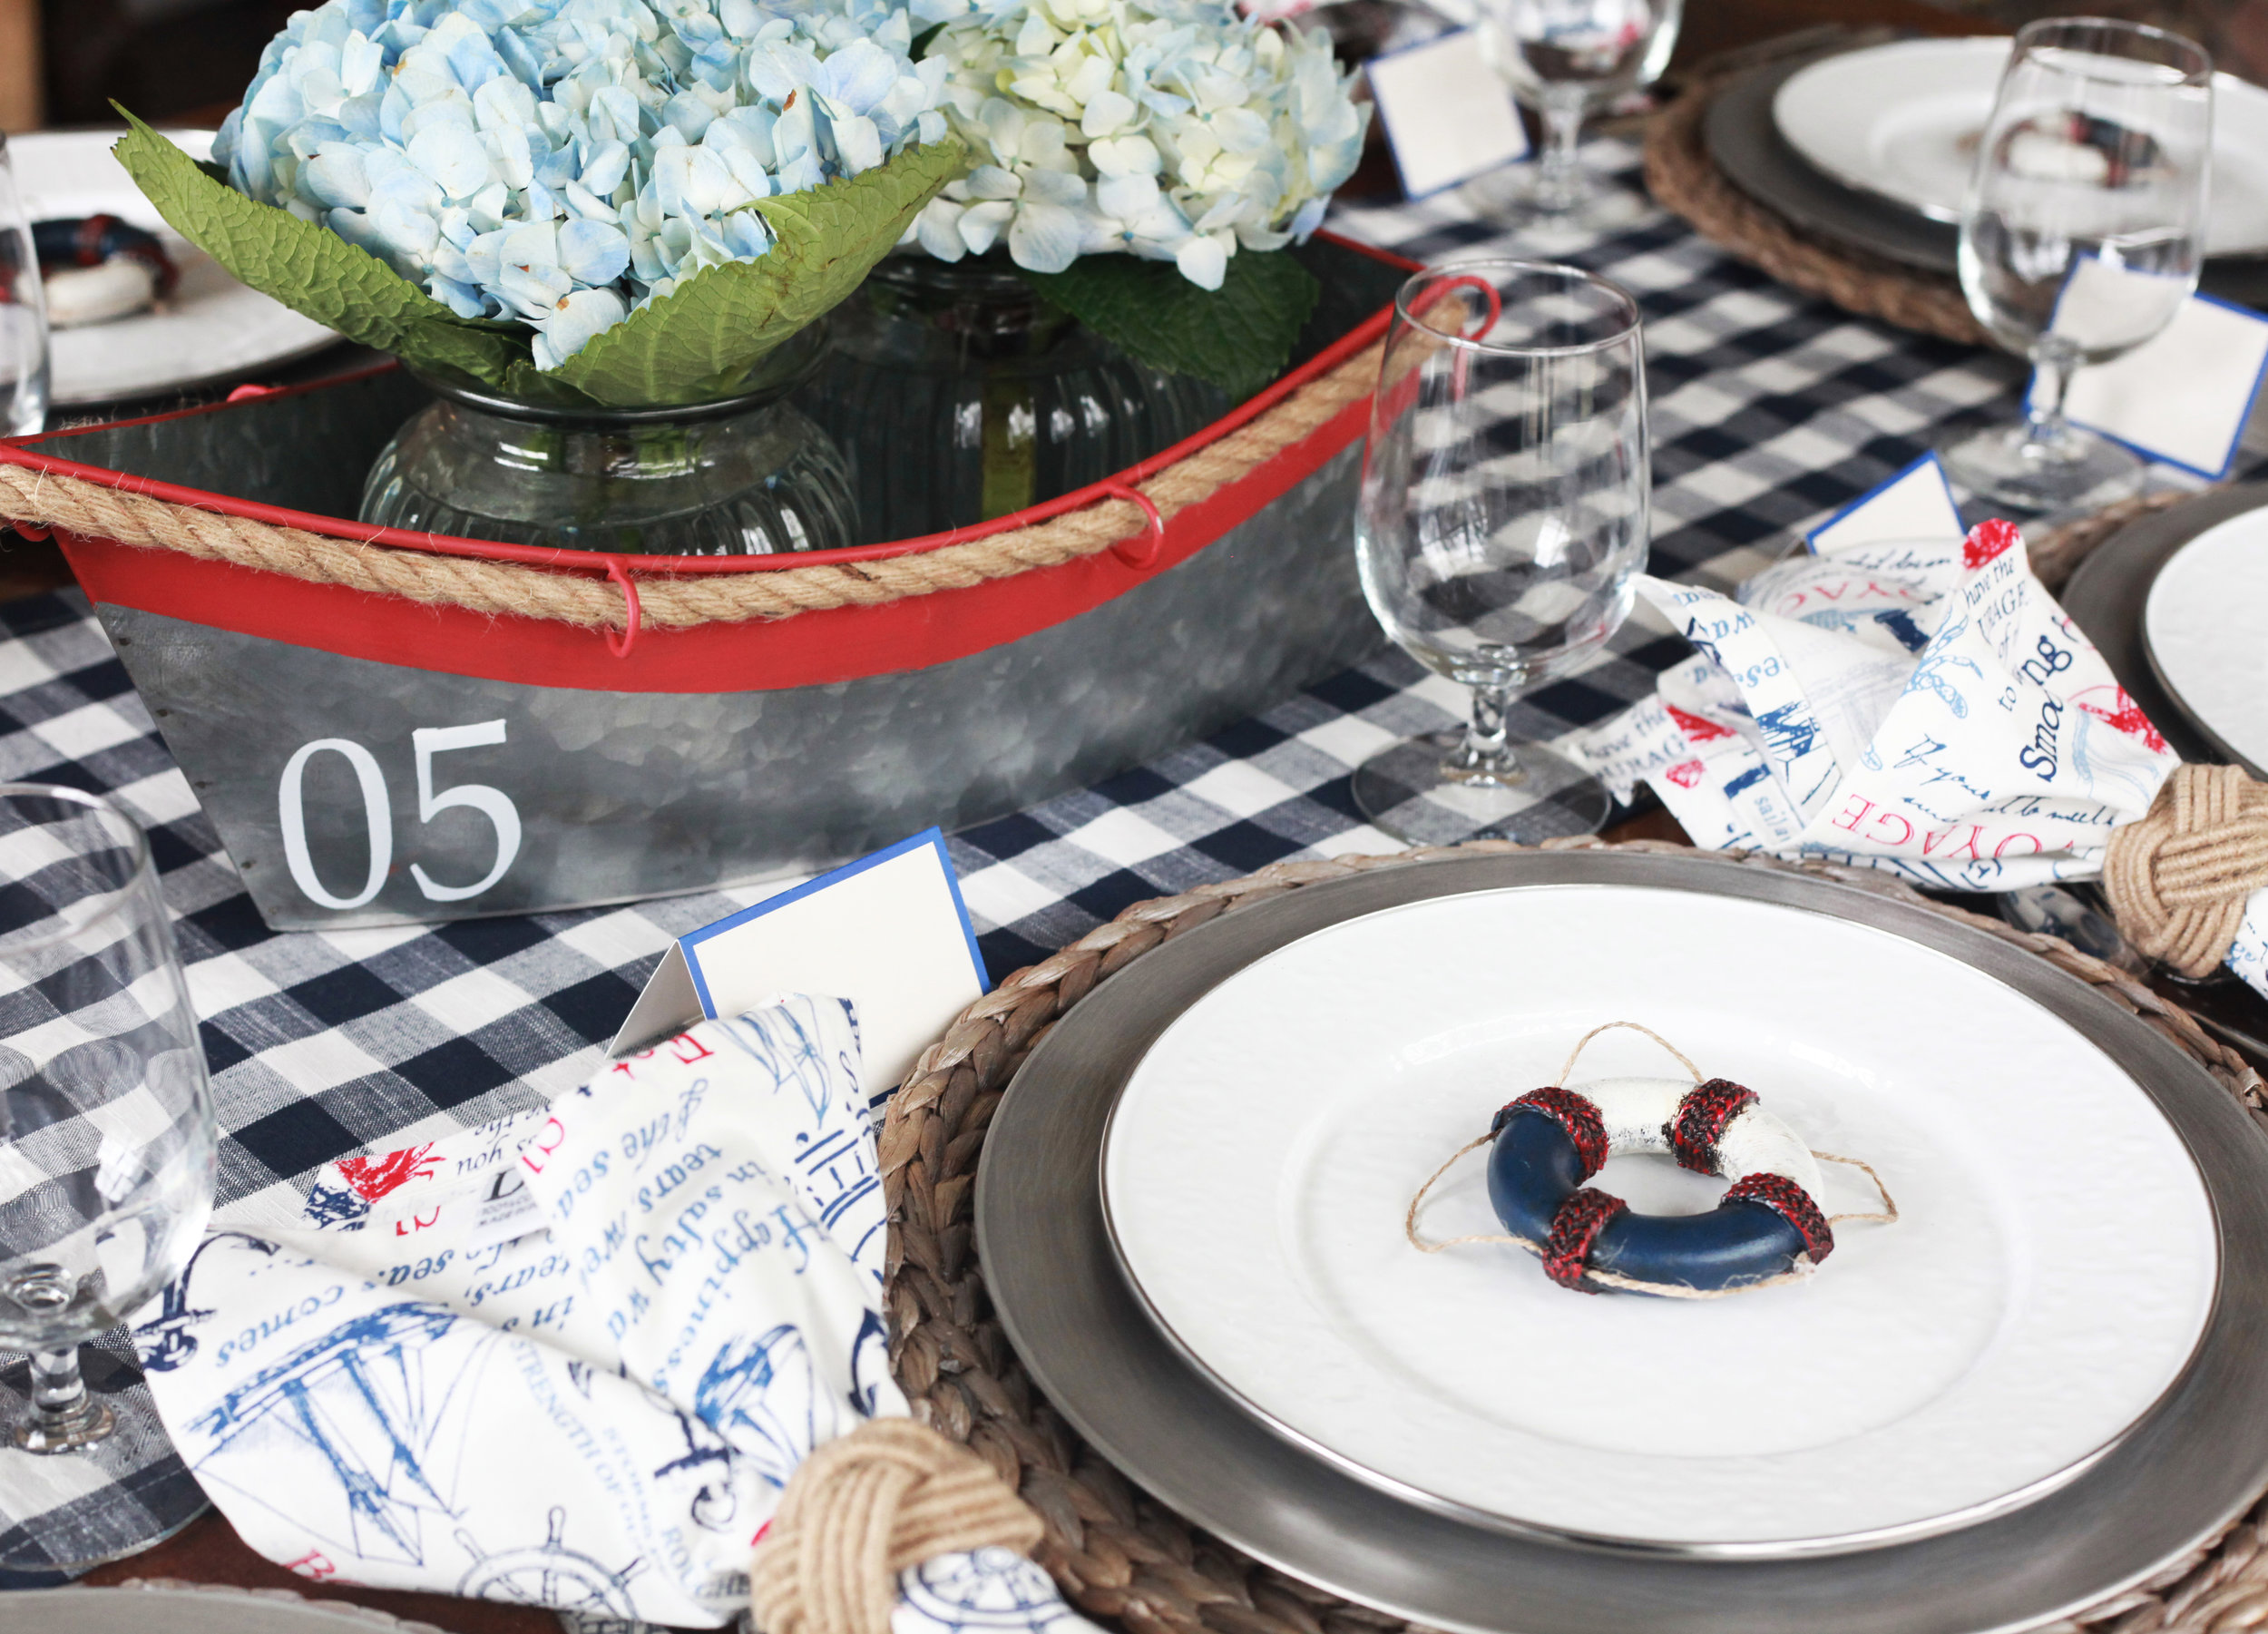 Sail the Seas - Tablescape Includes:Blue and white checkered gingham table runner, silver hued rattan charger, platinum patina charger, plate, Nautical notes printed napkin, knot napkin ring, silver rimmed enamel plate, blue rimmed place card, buoy plate accessory$14.99 per tablescapeLet your dreams set sail with this dreamy table for the captain in your life! The napkin is printed with quotes perfect for any sailor! Bon Voyage!